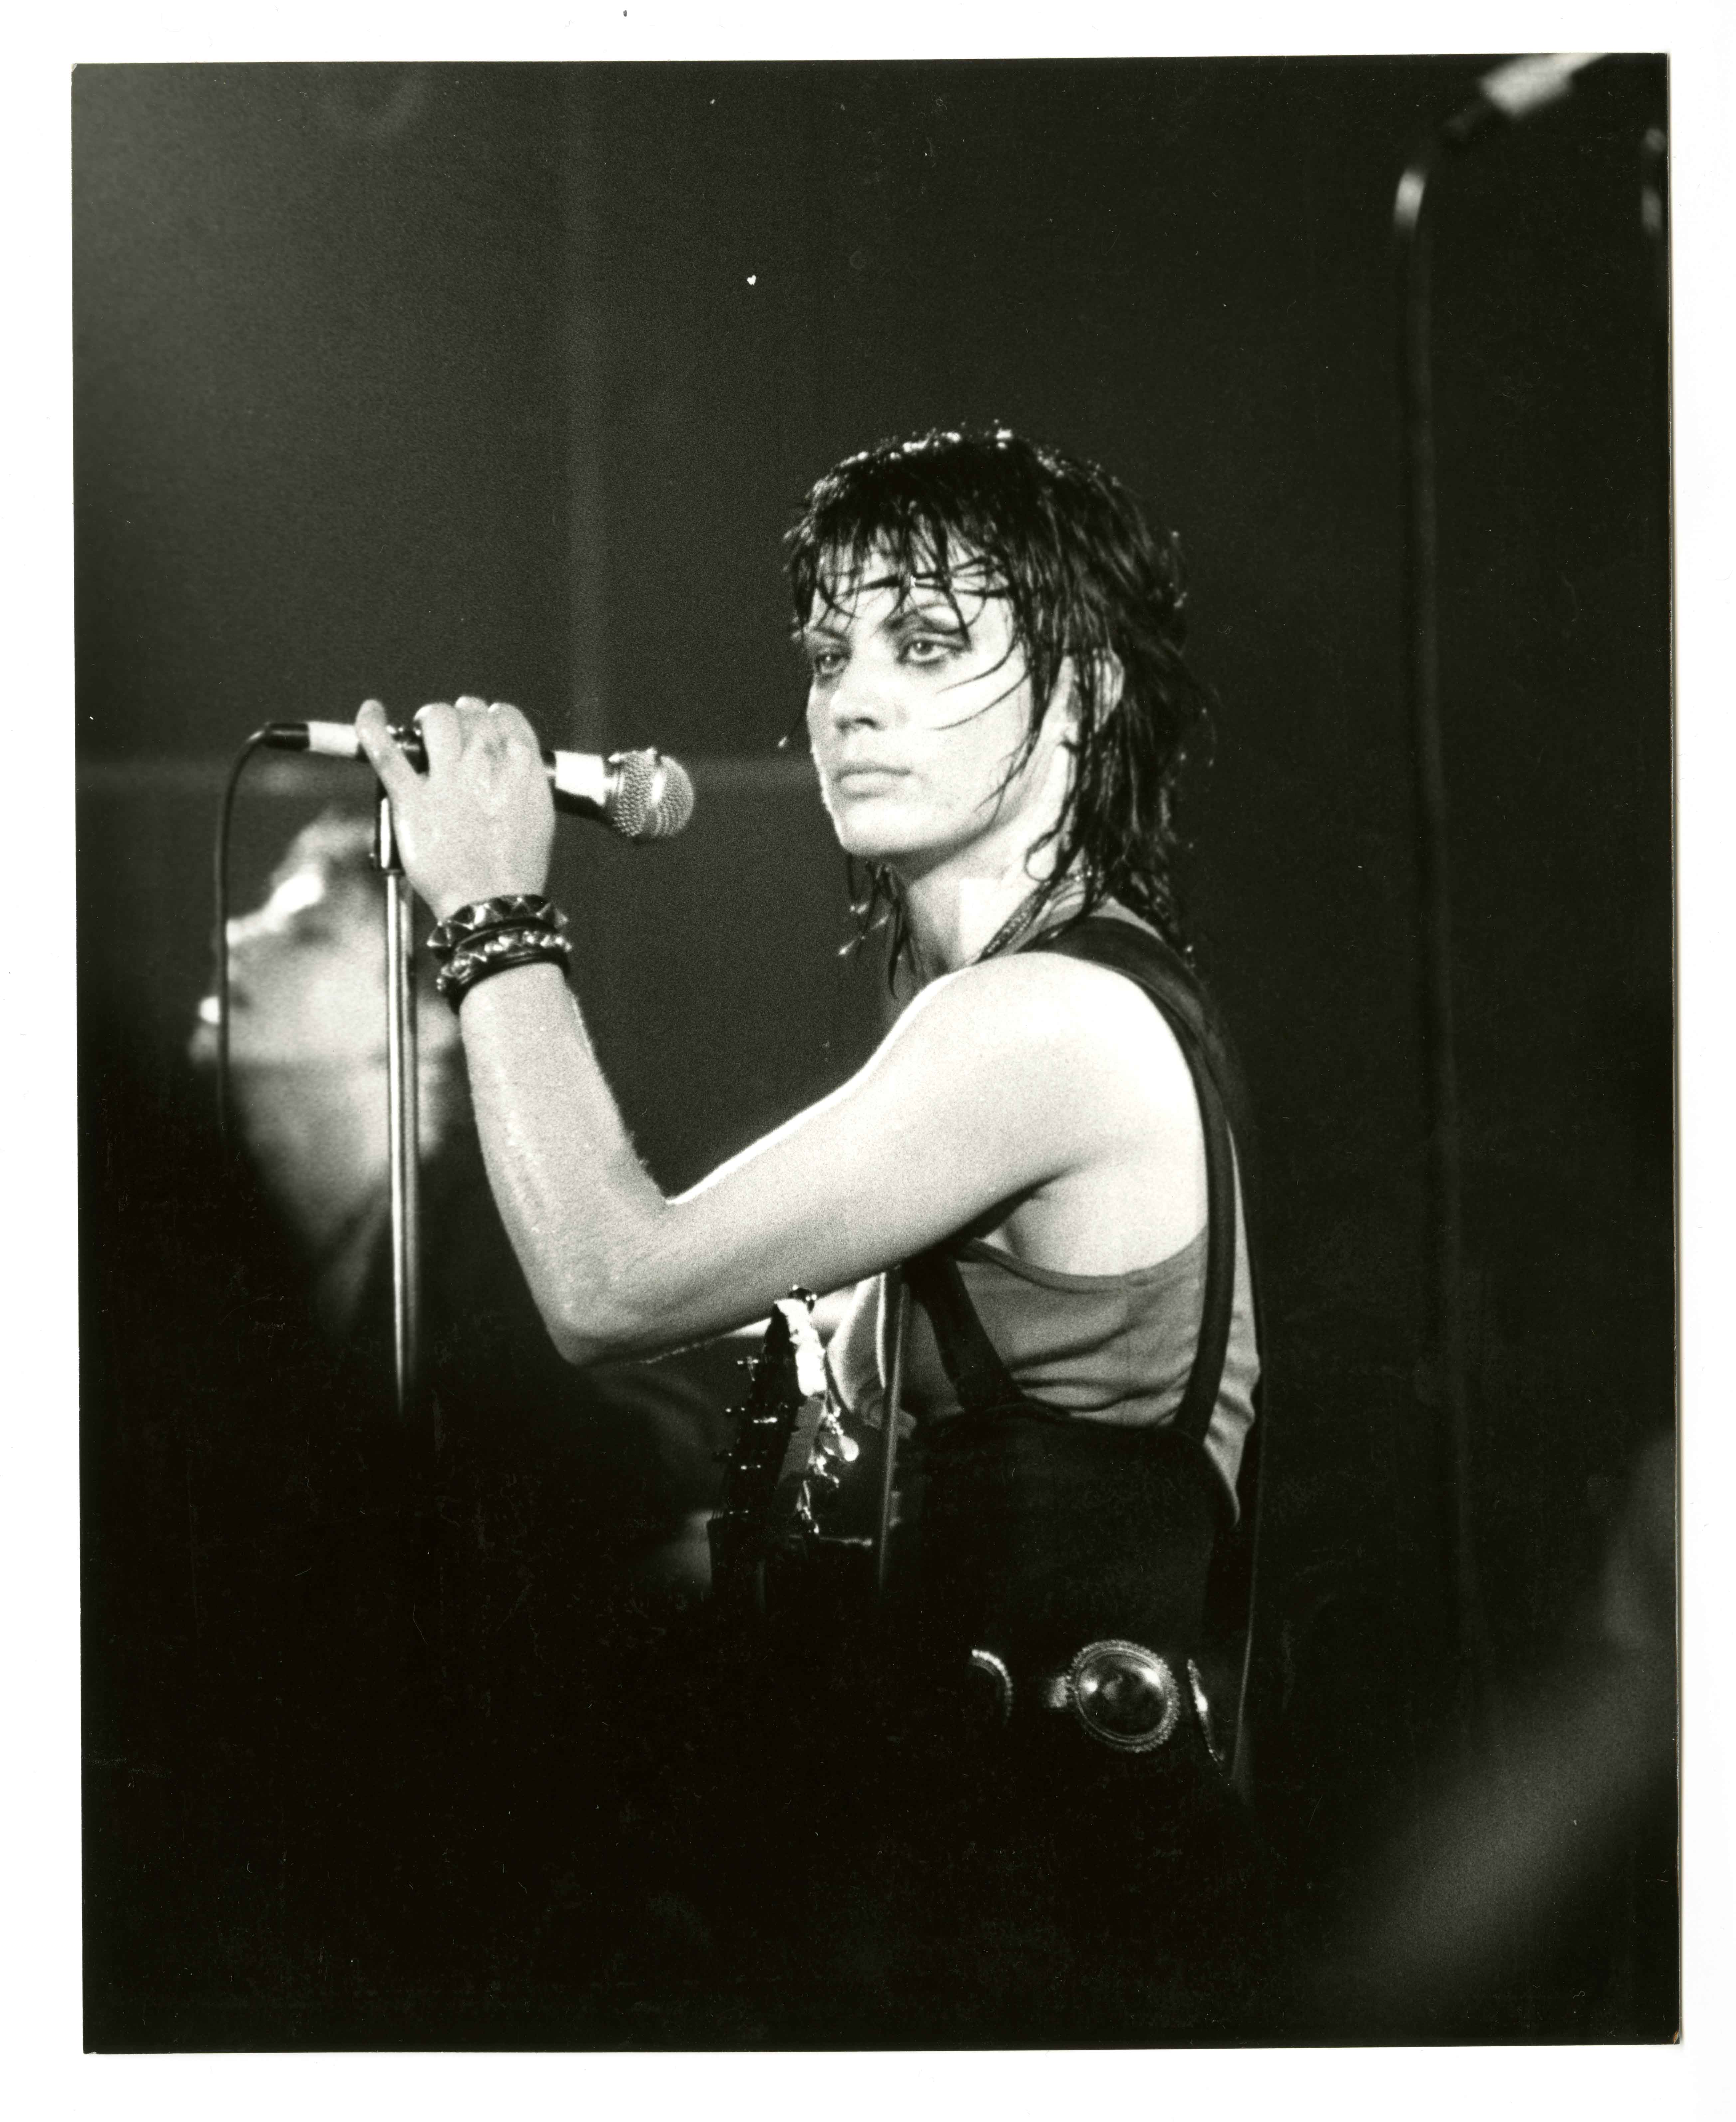 Joan Jett performance photograph